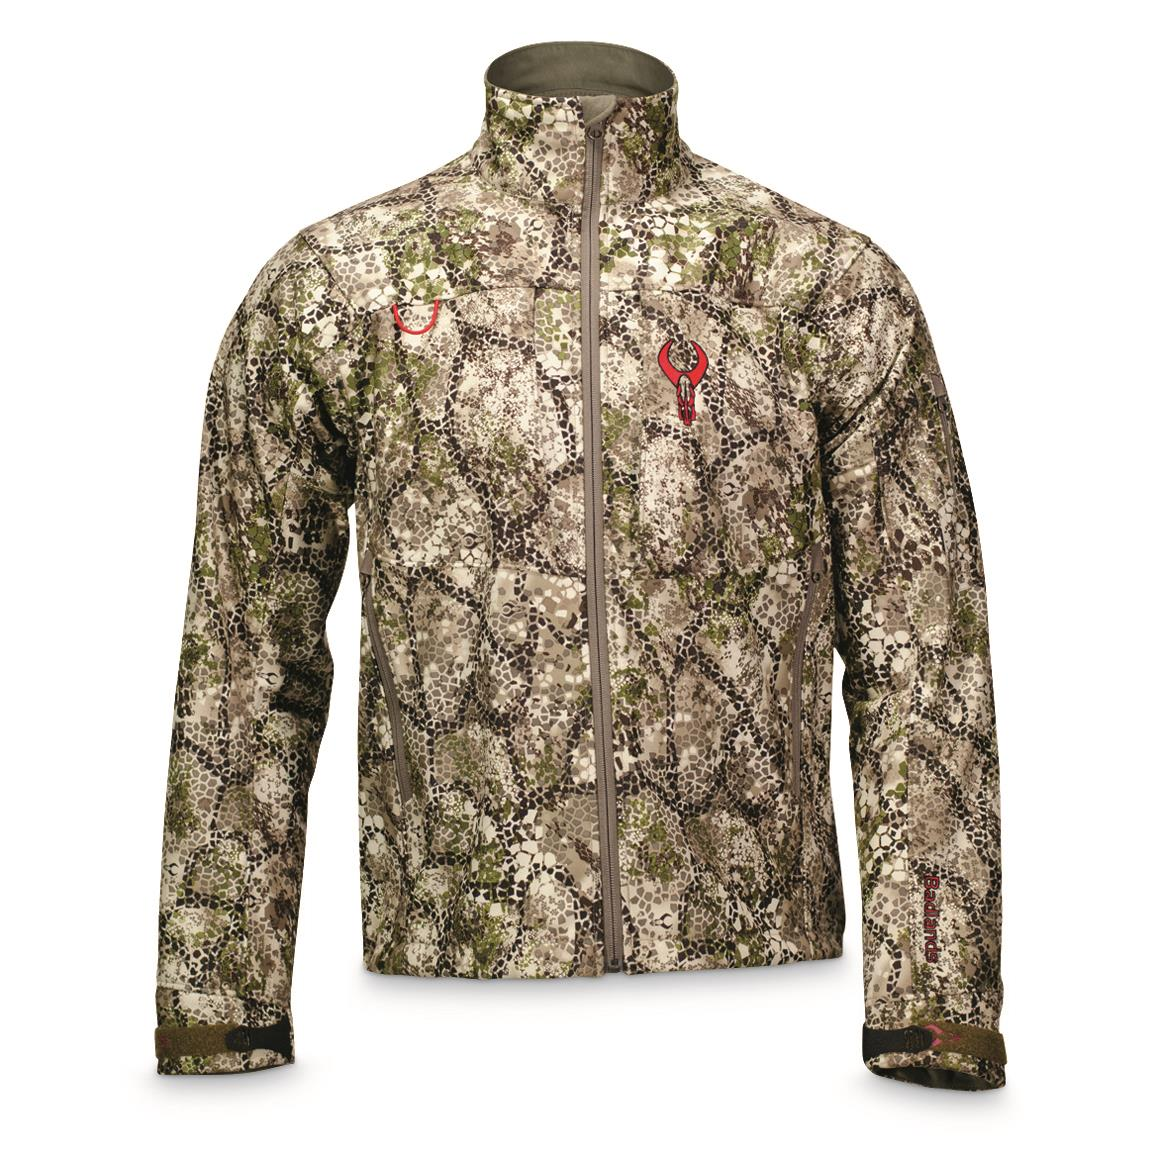 Badlands Men's Calor Hunting Jacket, Approach Camo